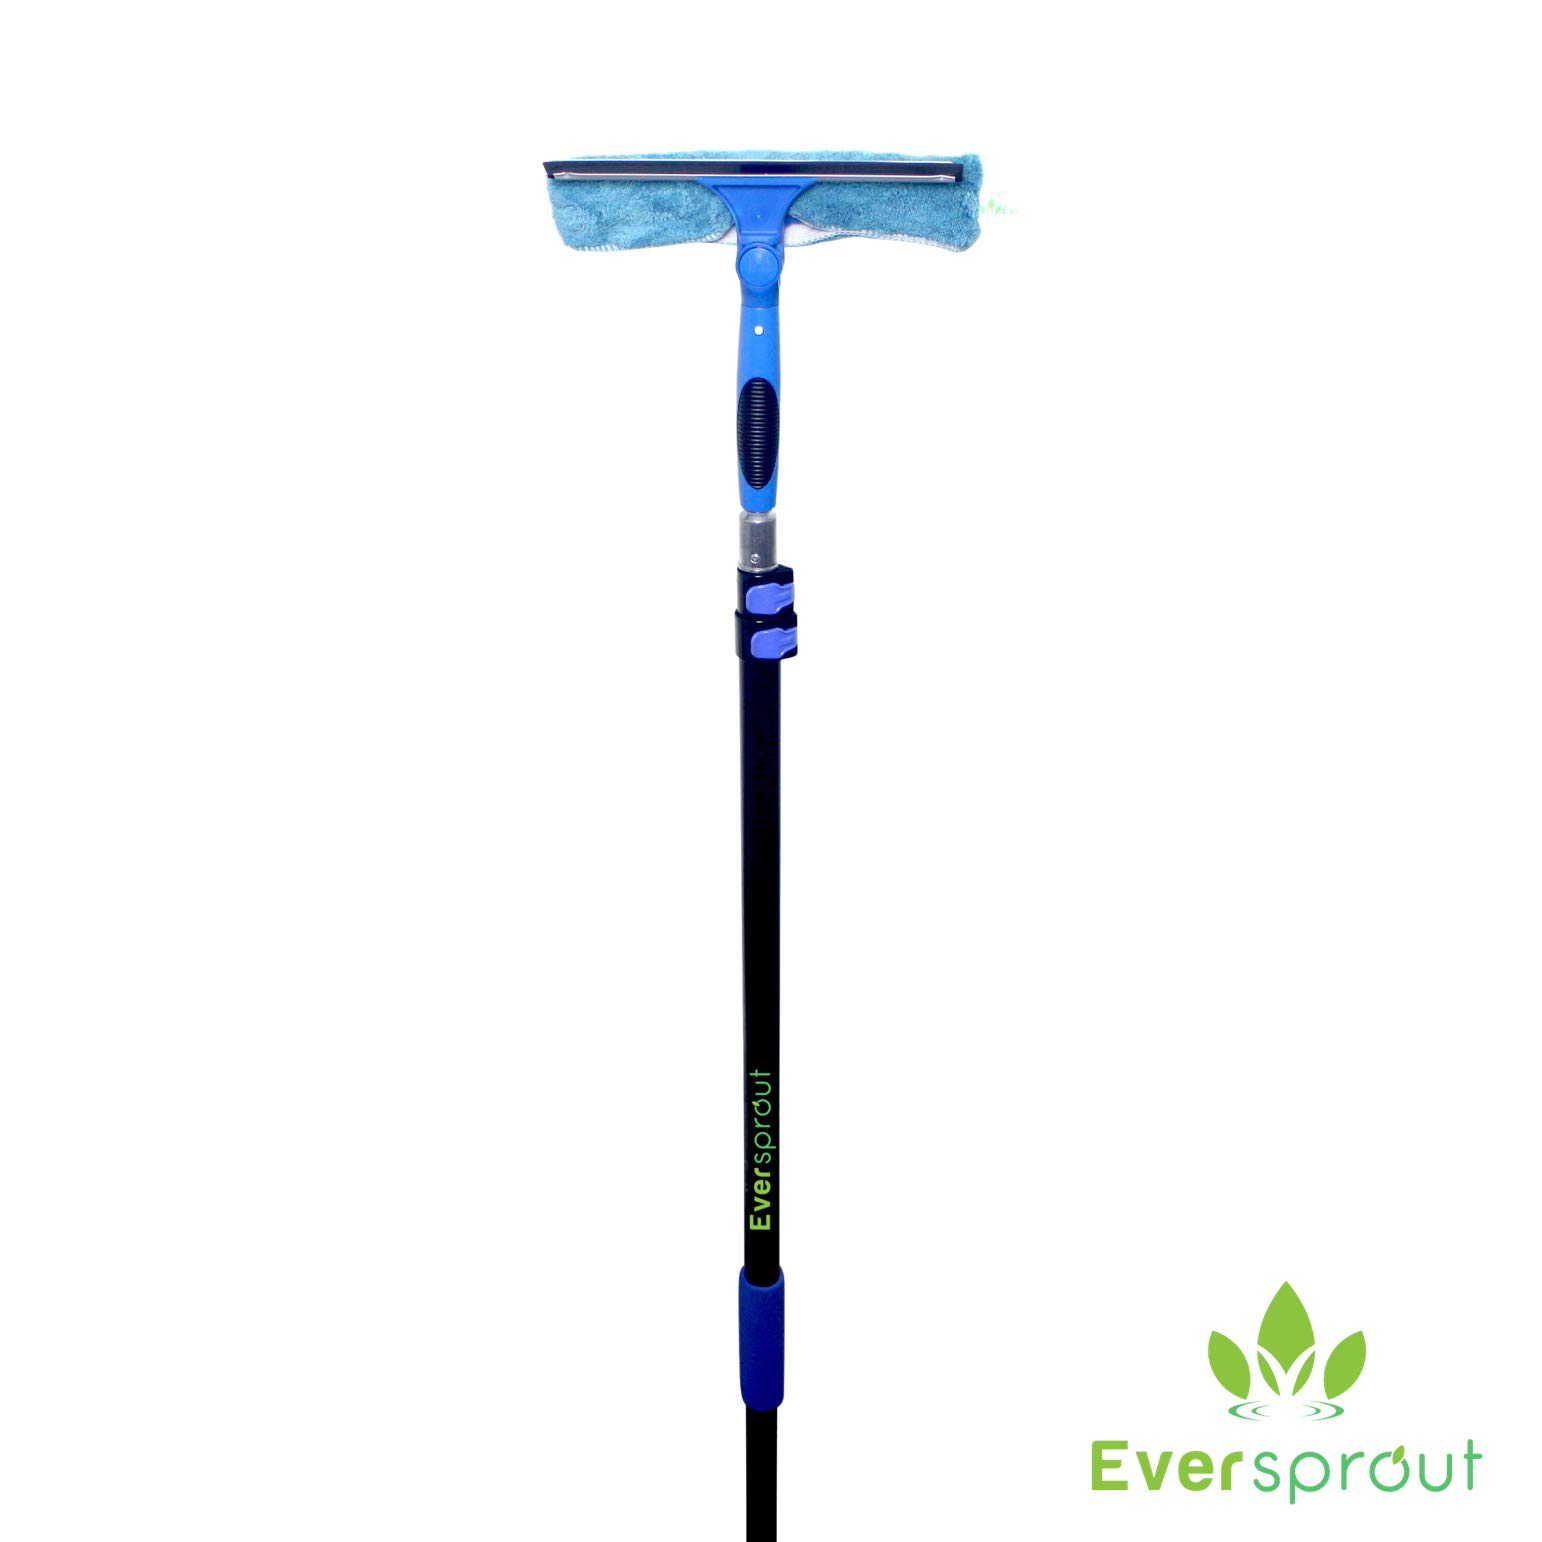 EVERSPROUT 7-to-20 Foot Swivel Squeegee and Microfiber Window Scrubber (25+ Ft. Reach) | 2-in-1 Window & Glass Cleaning Combo with Light-Weight, Aluminum Extension Pole | Includes 10-inch Blade by EVERSPROUT (Image #2)